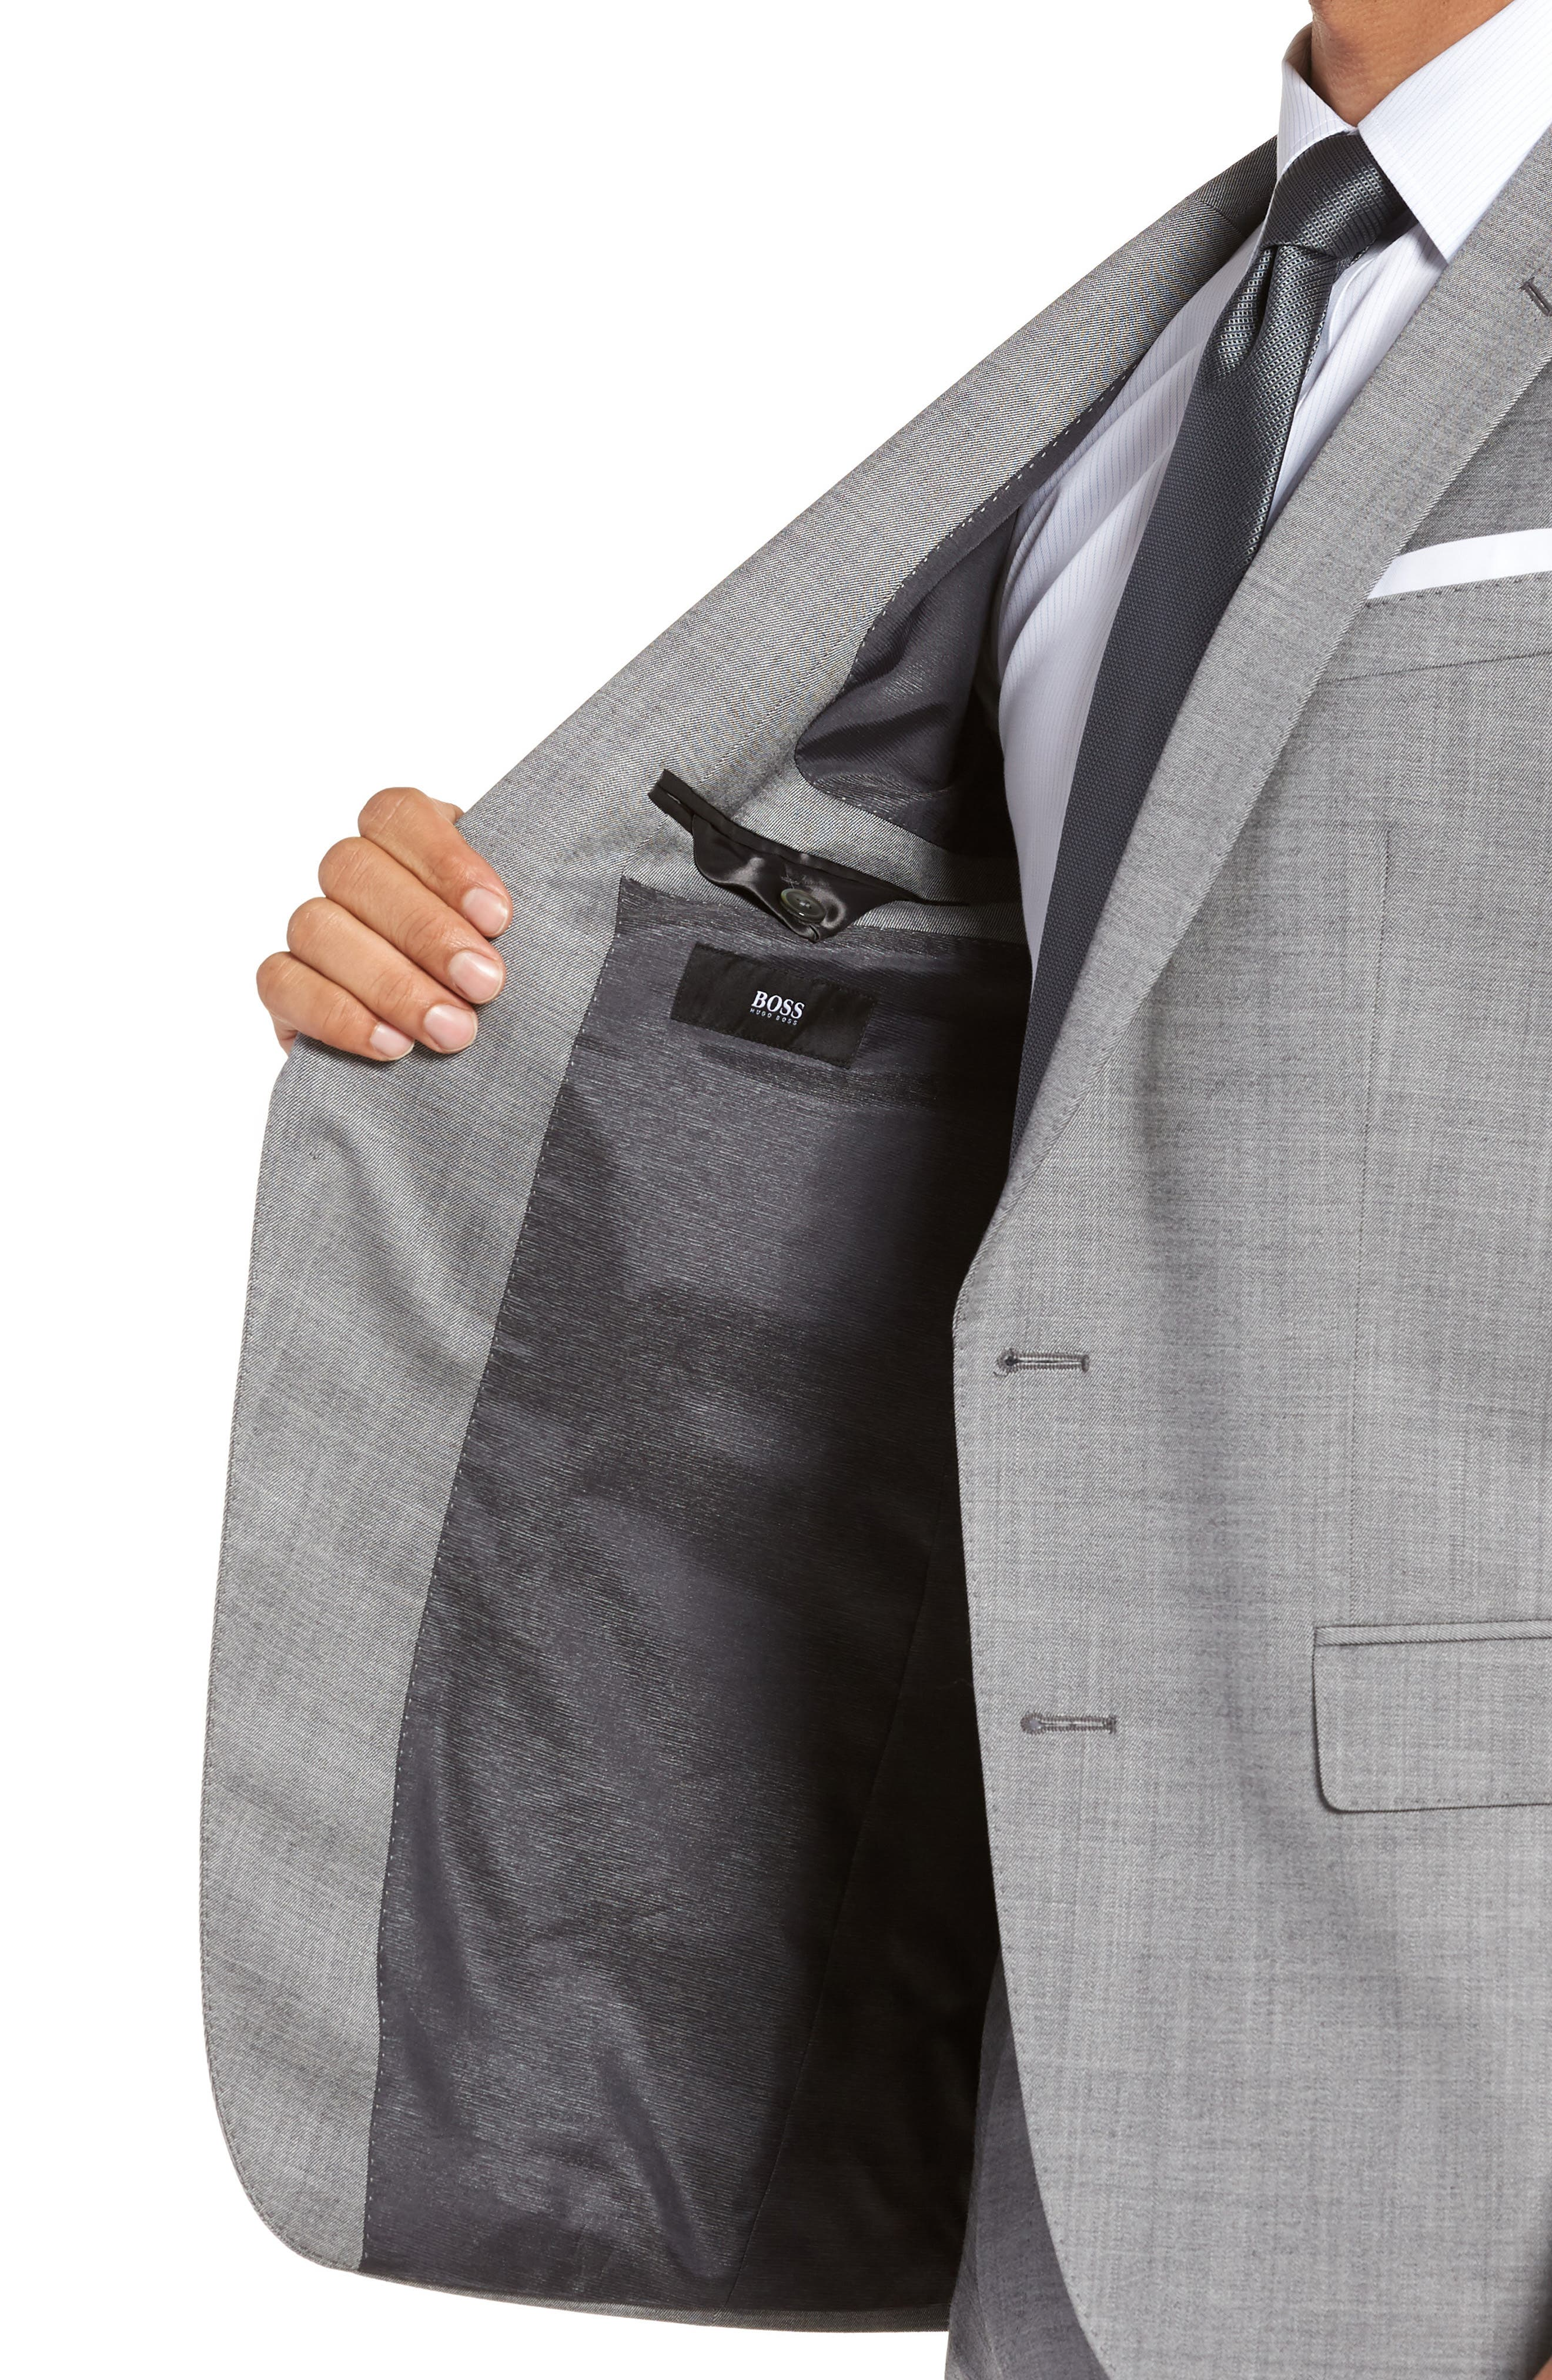 Hutsons/Gander Trim Fit Solid Wool & Silk Suit,                             Alternate thumbnail 4, color,                             Light Grey